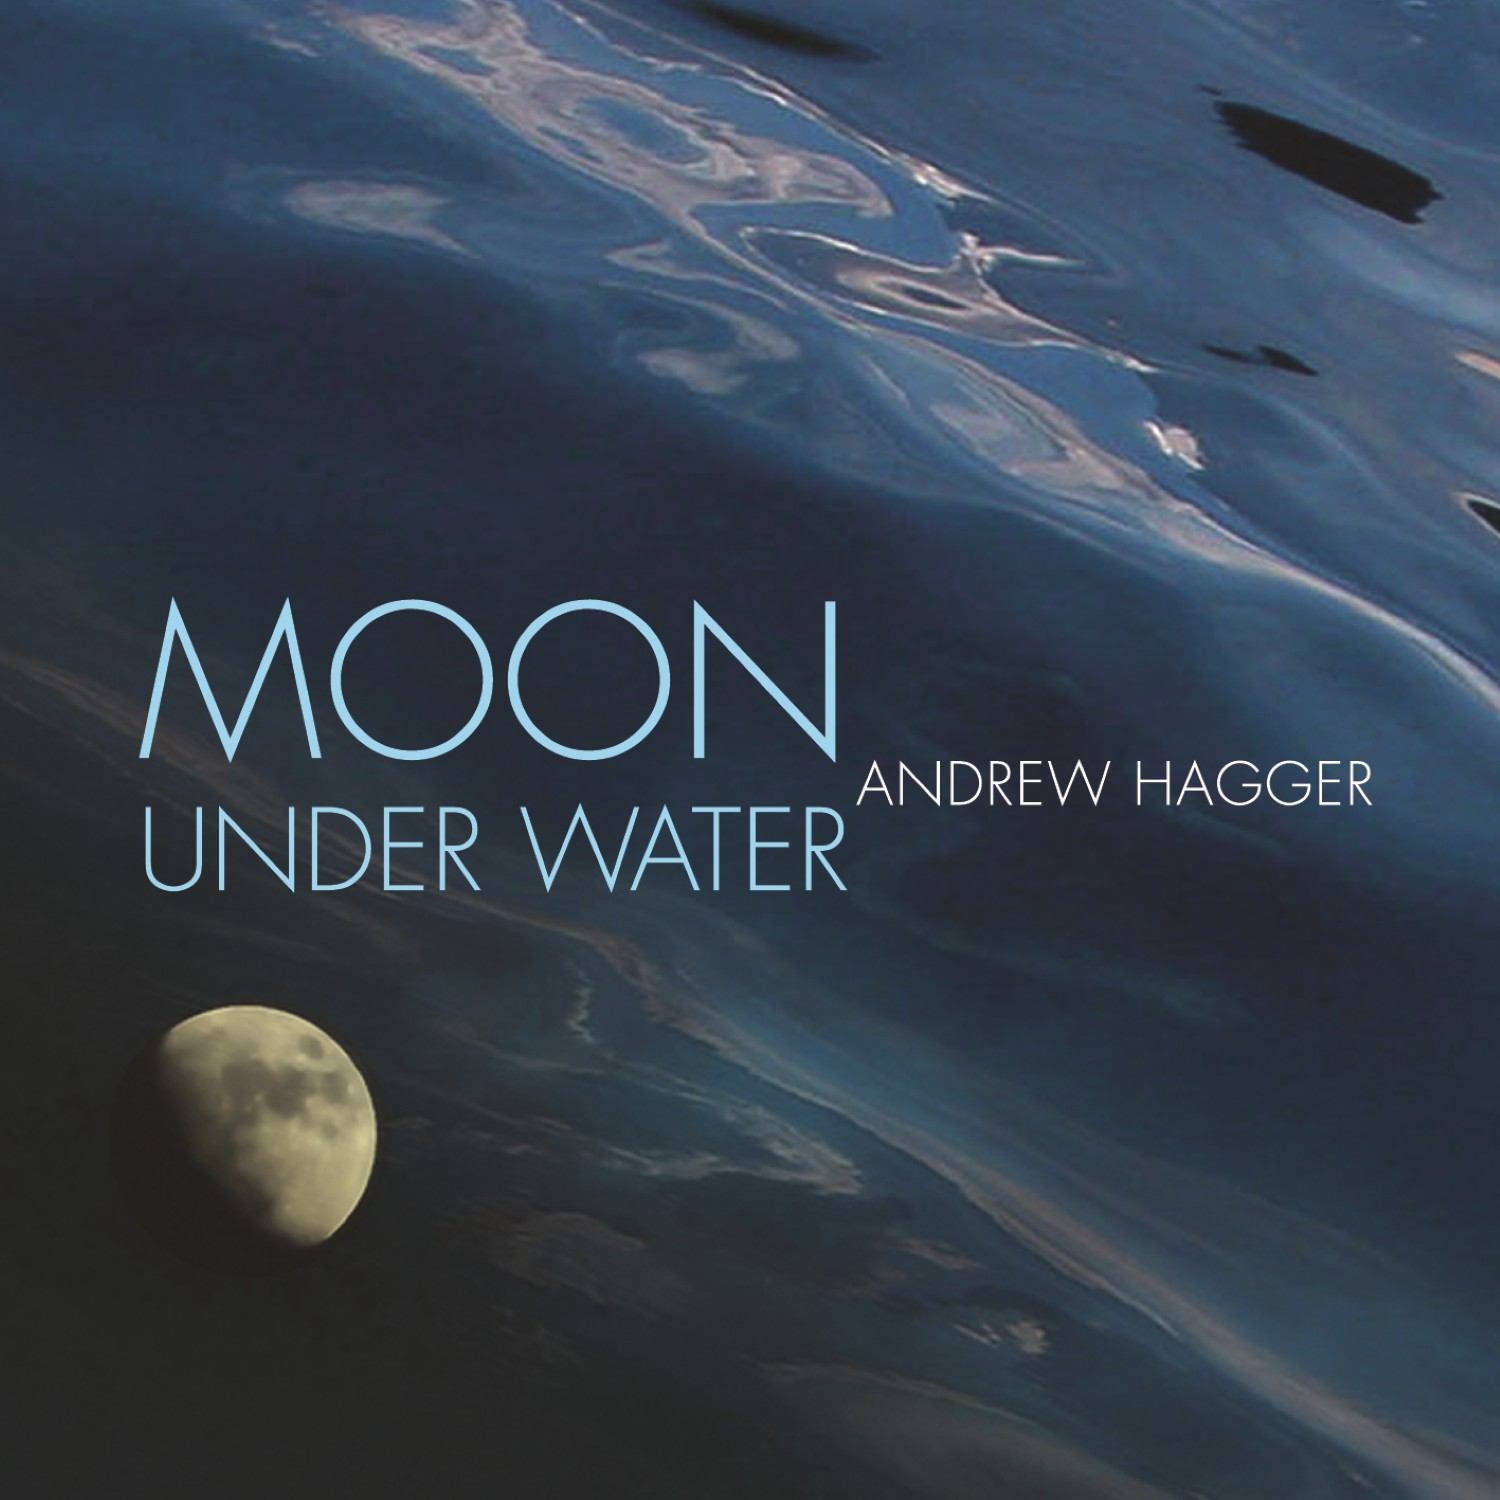 the moon on the water essay The moon under water is an essay written by george orwell about his favourite pub it was published in the evening standard on the 9th february 1946.